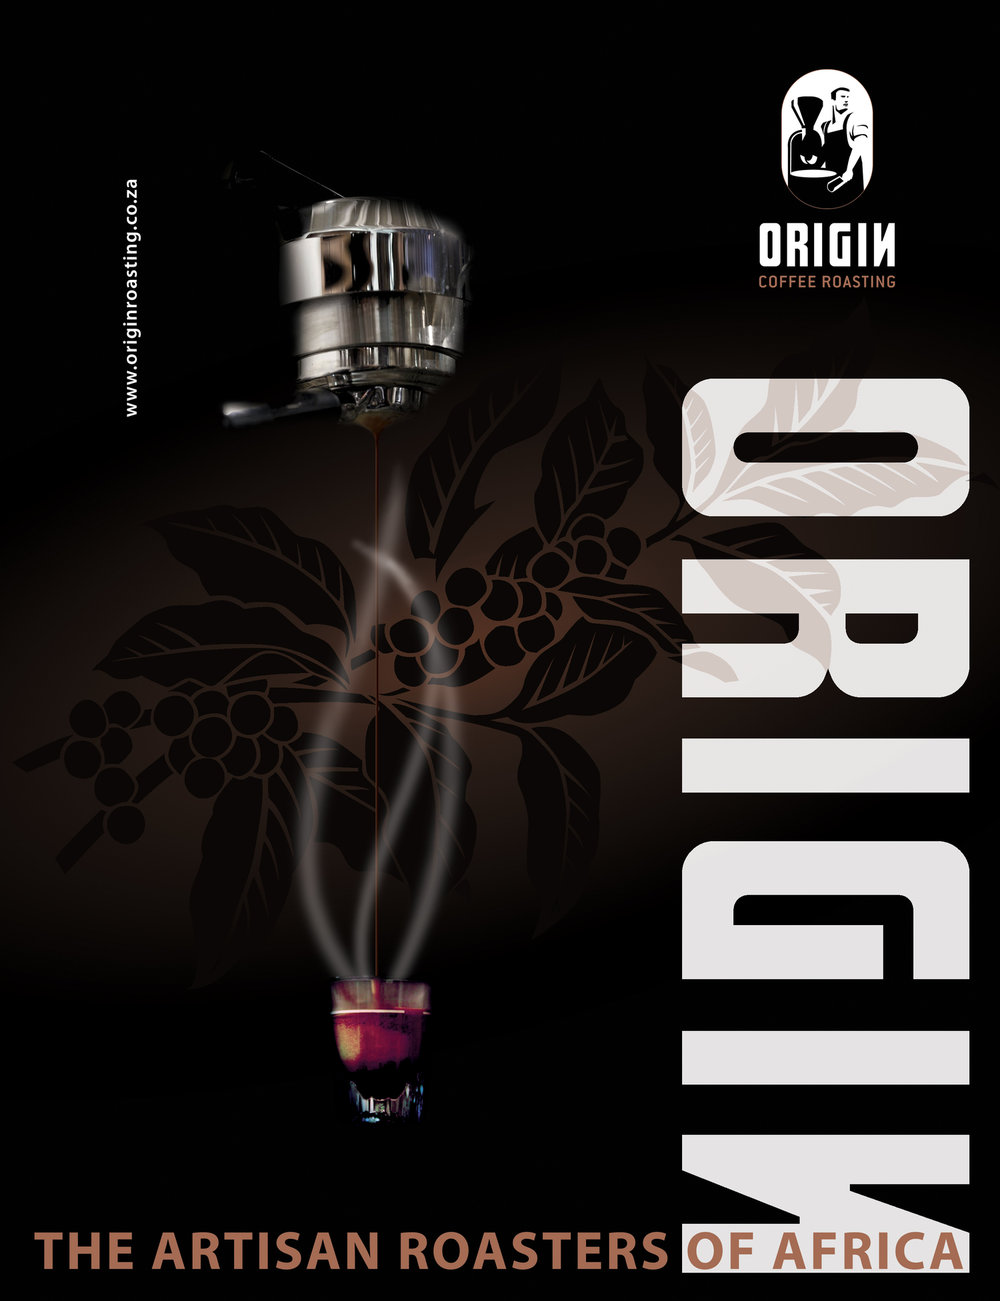 Commercial ads - As I was an intern i South Africa i made various of ads for Origin coffee company.